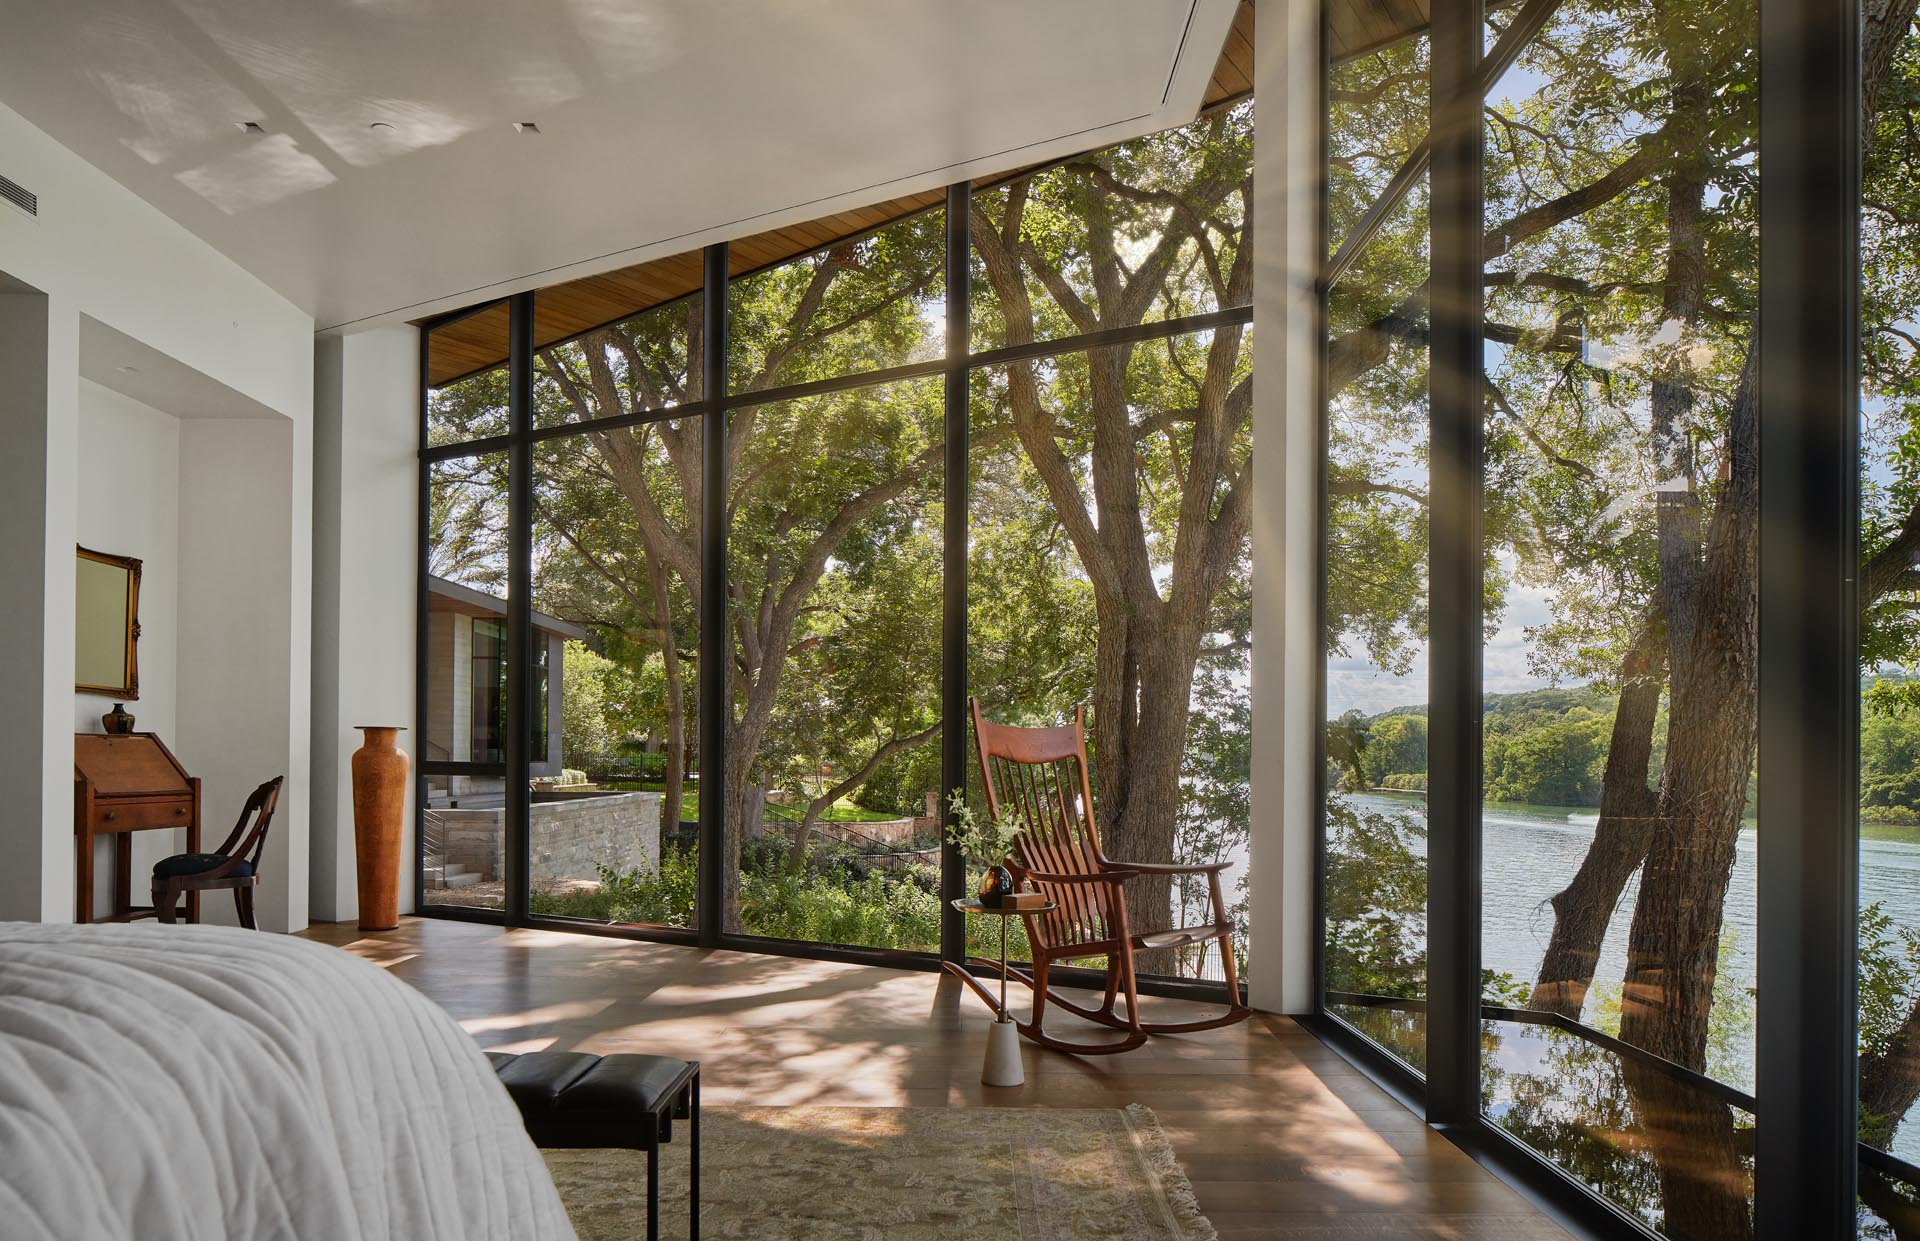 This primary bedroom has a hexagonal layout and 180 degree views of the lake through the floor-to-ceiling windows.